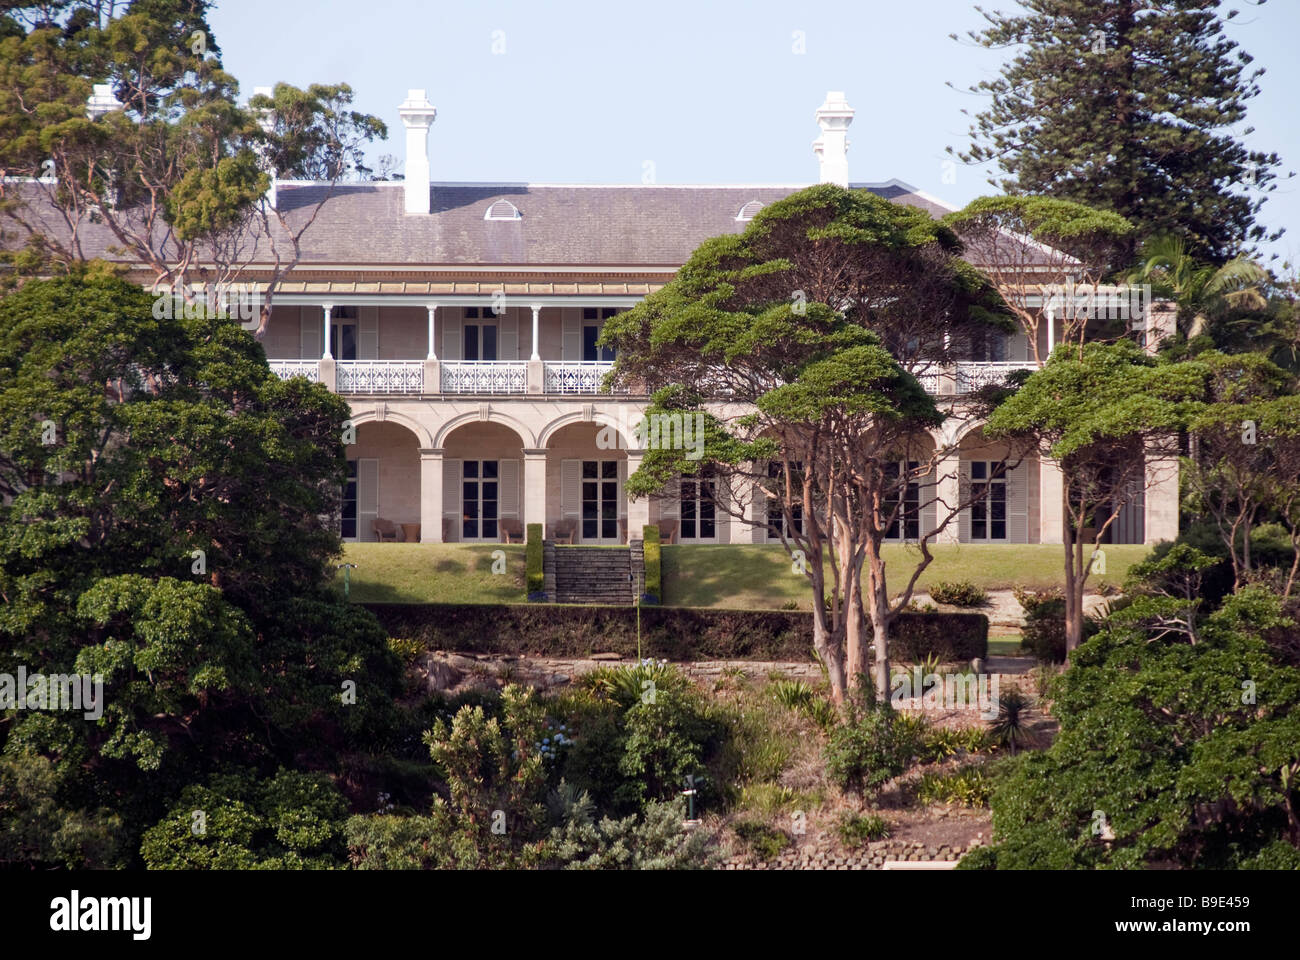 kirribilli house 10am-4pm entrance fees are to raise funds for acquisitions wwwtheaustralianafundorgau.